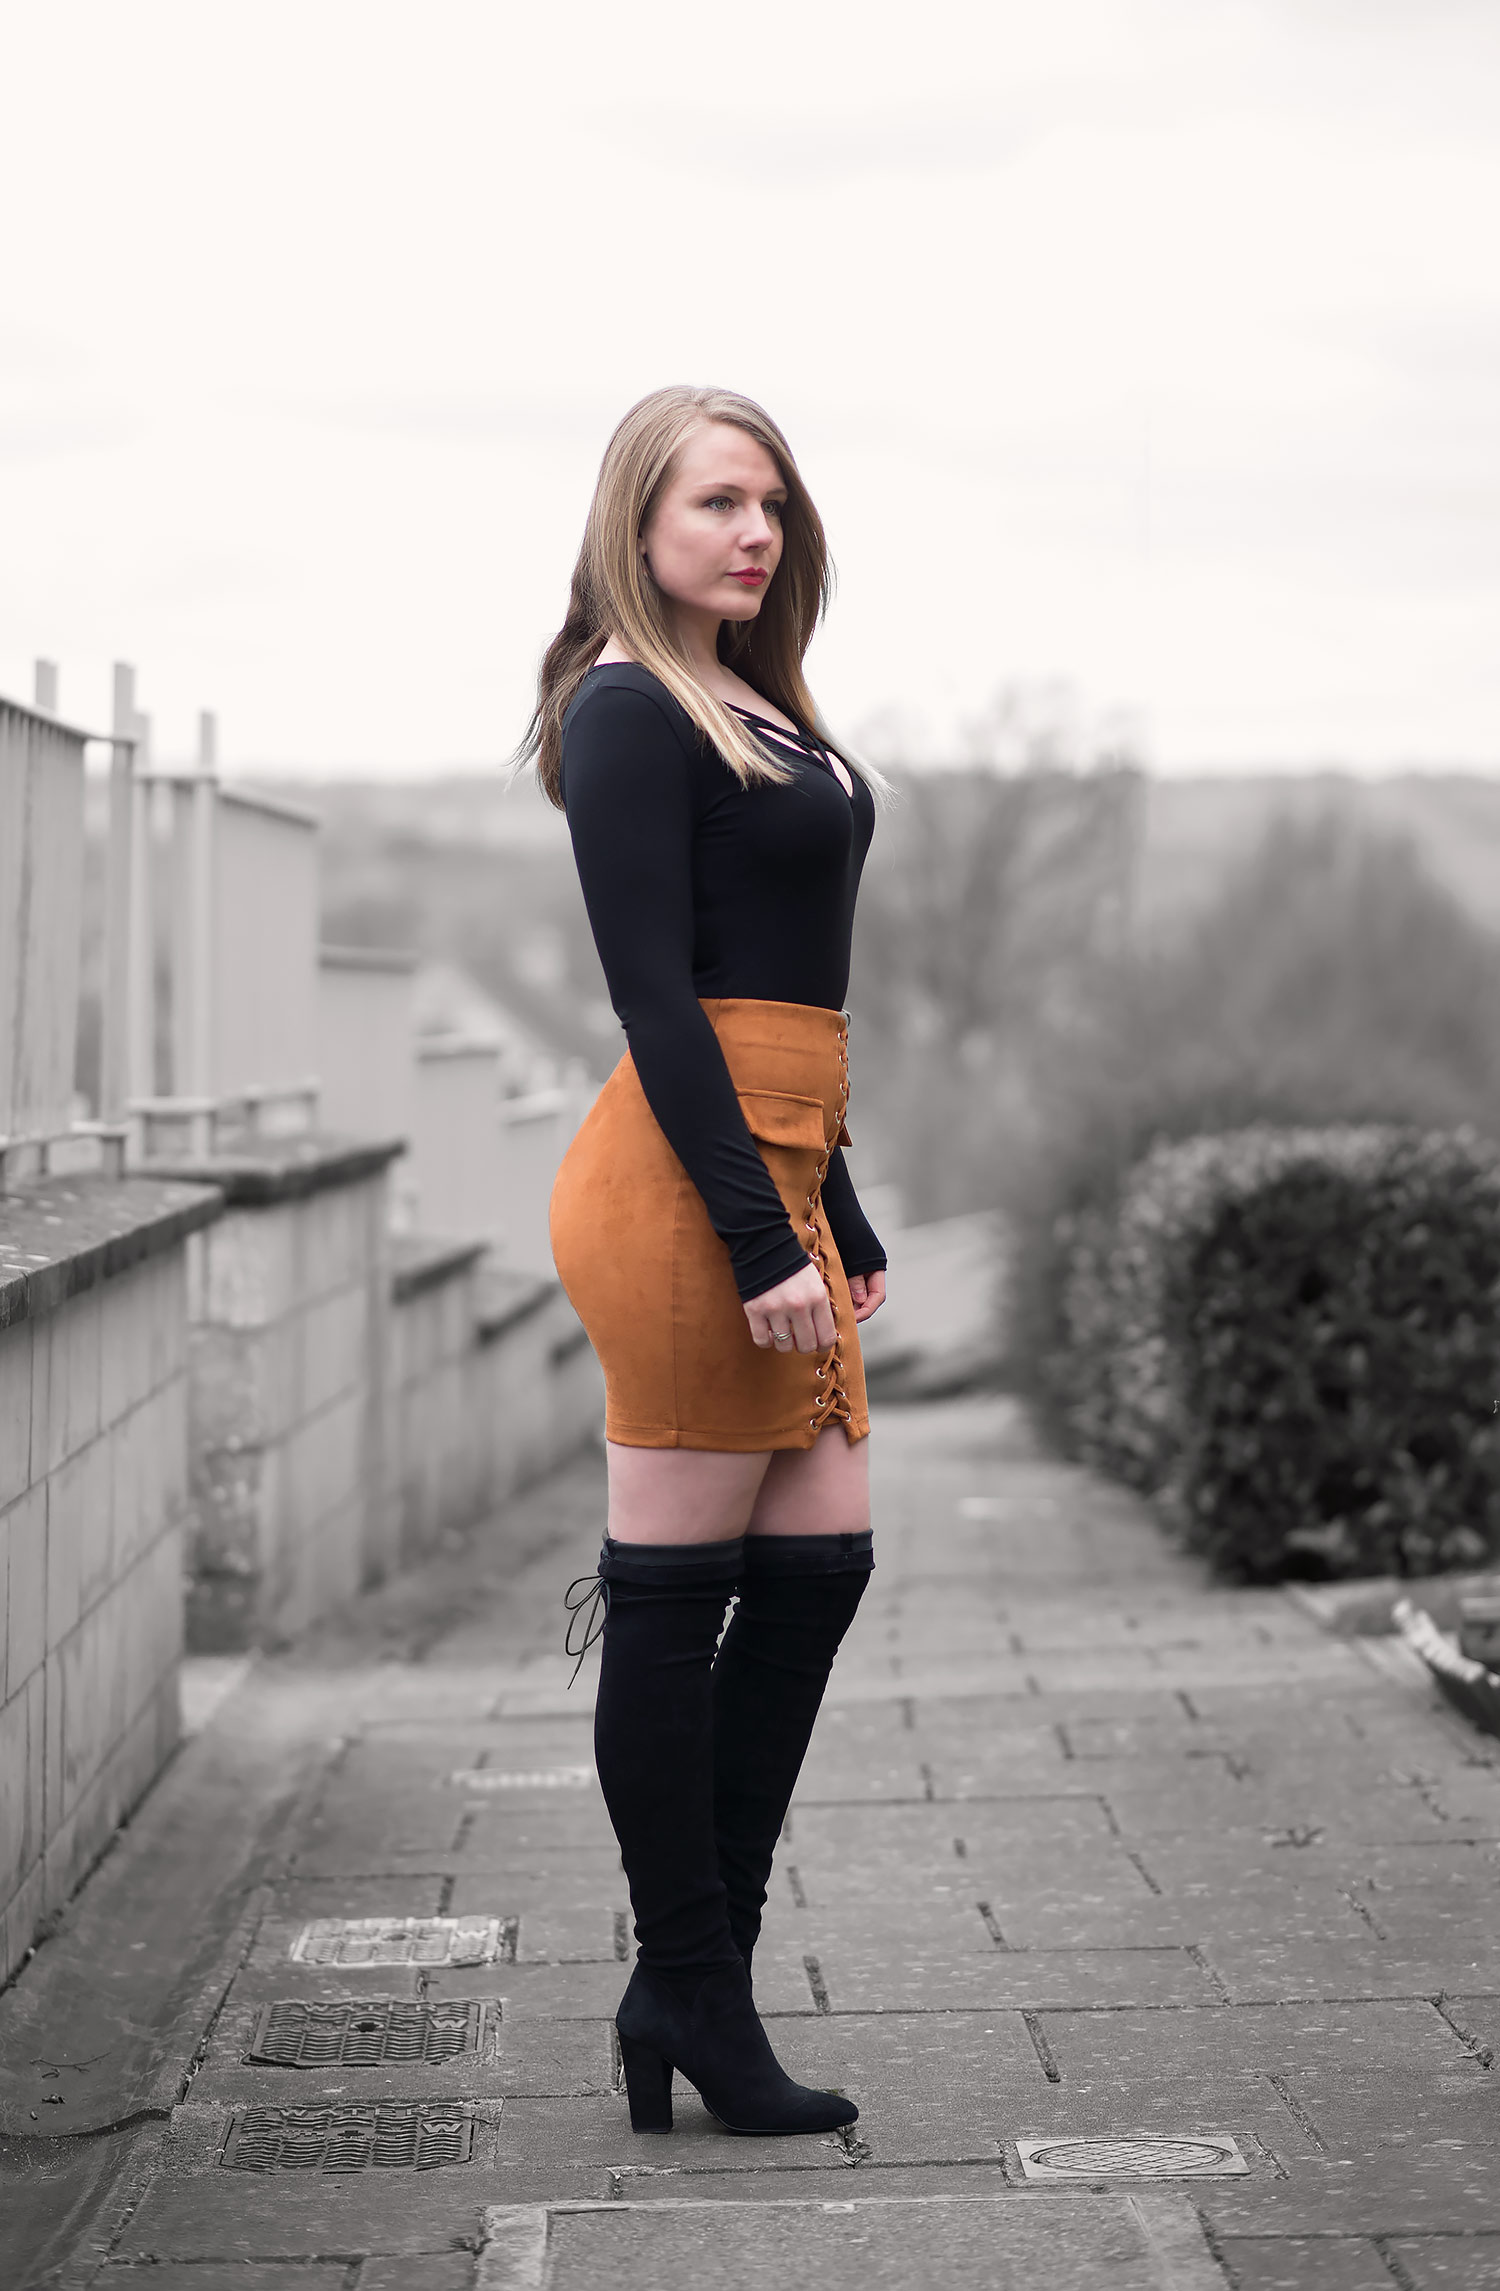 The Lace Up Skirt And Boots Outfit | Raindrops of Sapphire